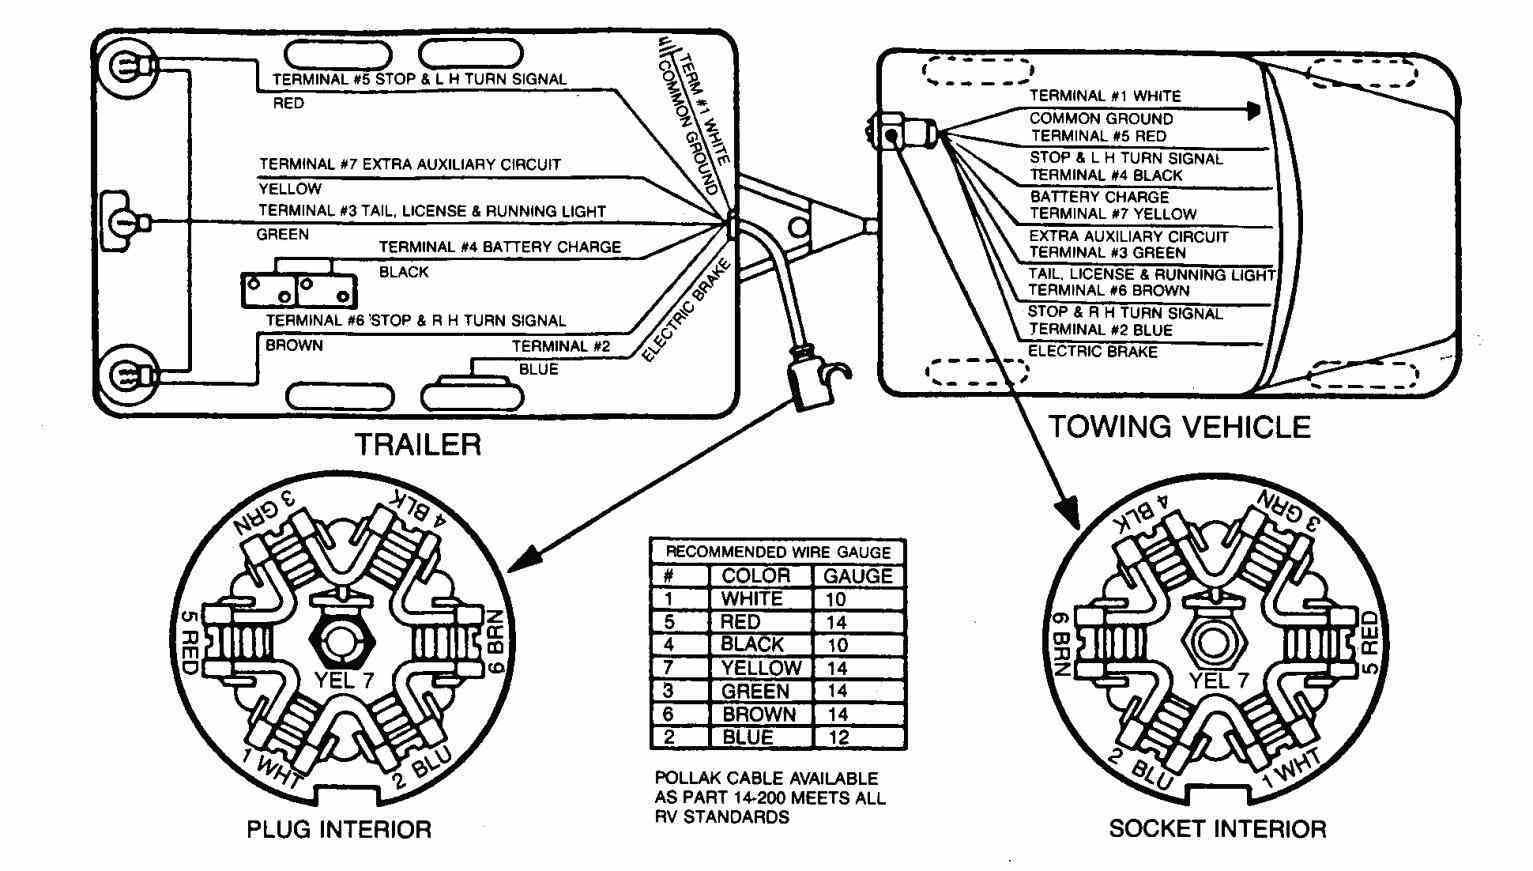 78 Chevy Trailer Plug Wiring Diagram Private Sharing About Towing Trusted Diagrams Rh Hamze Co